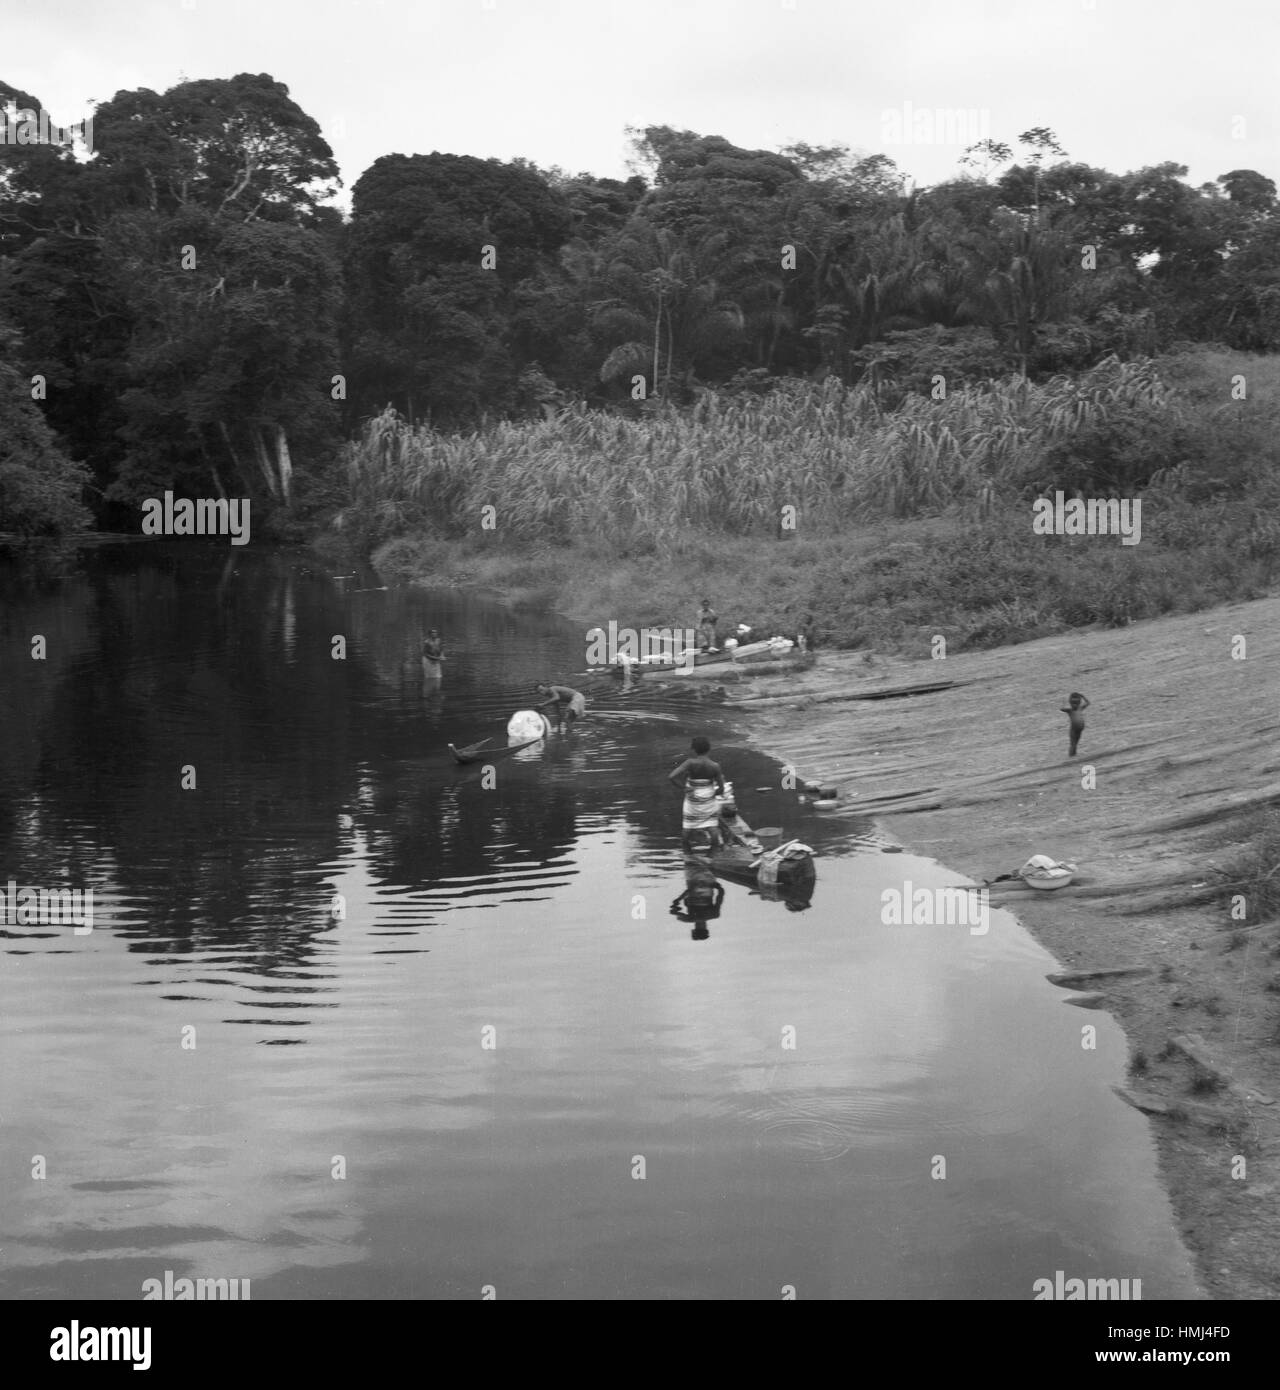 Boote am Ufer im Siedlungsgebiet der Maroons, Suriname 1966. Boats at the river bank in the settelement area of - Stock Image